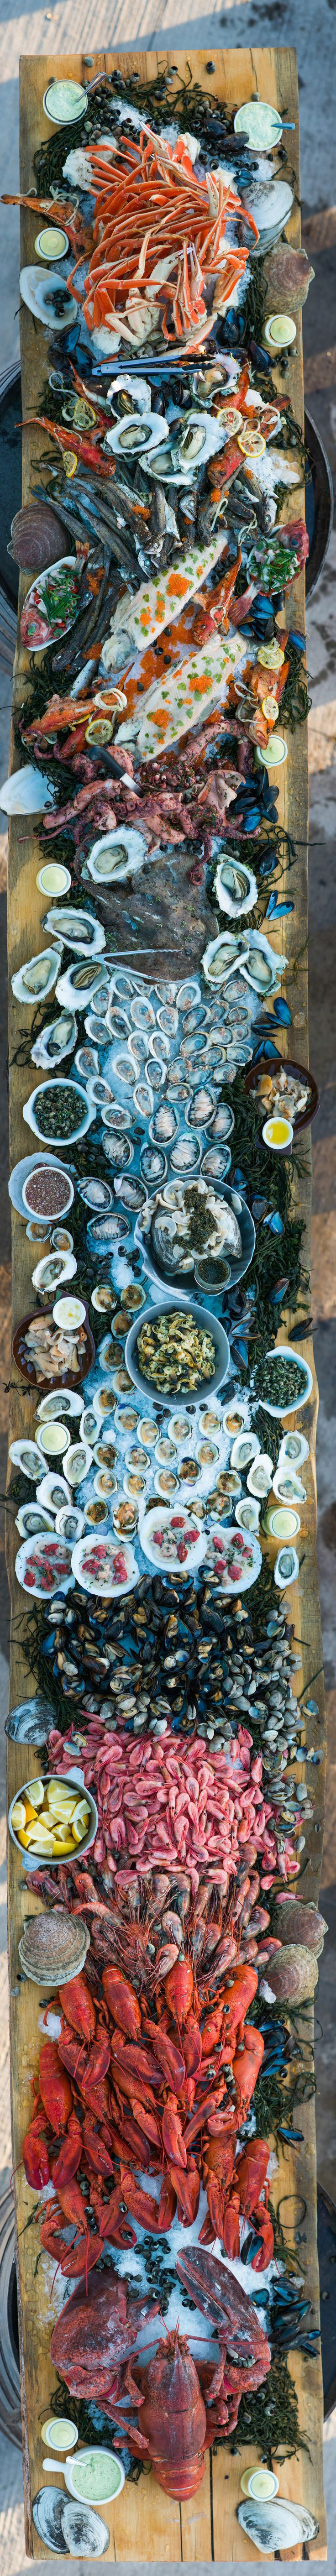 25 best ideas about seafood buffet on pinterest scampi for Fish buffet near me